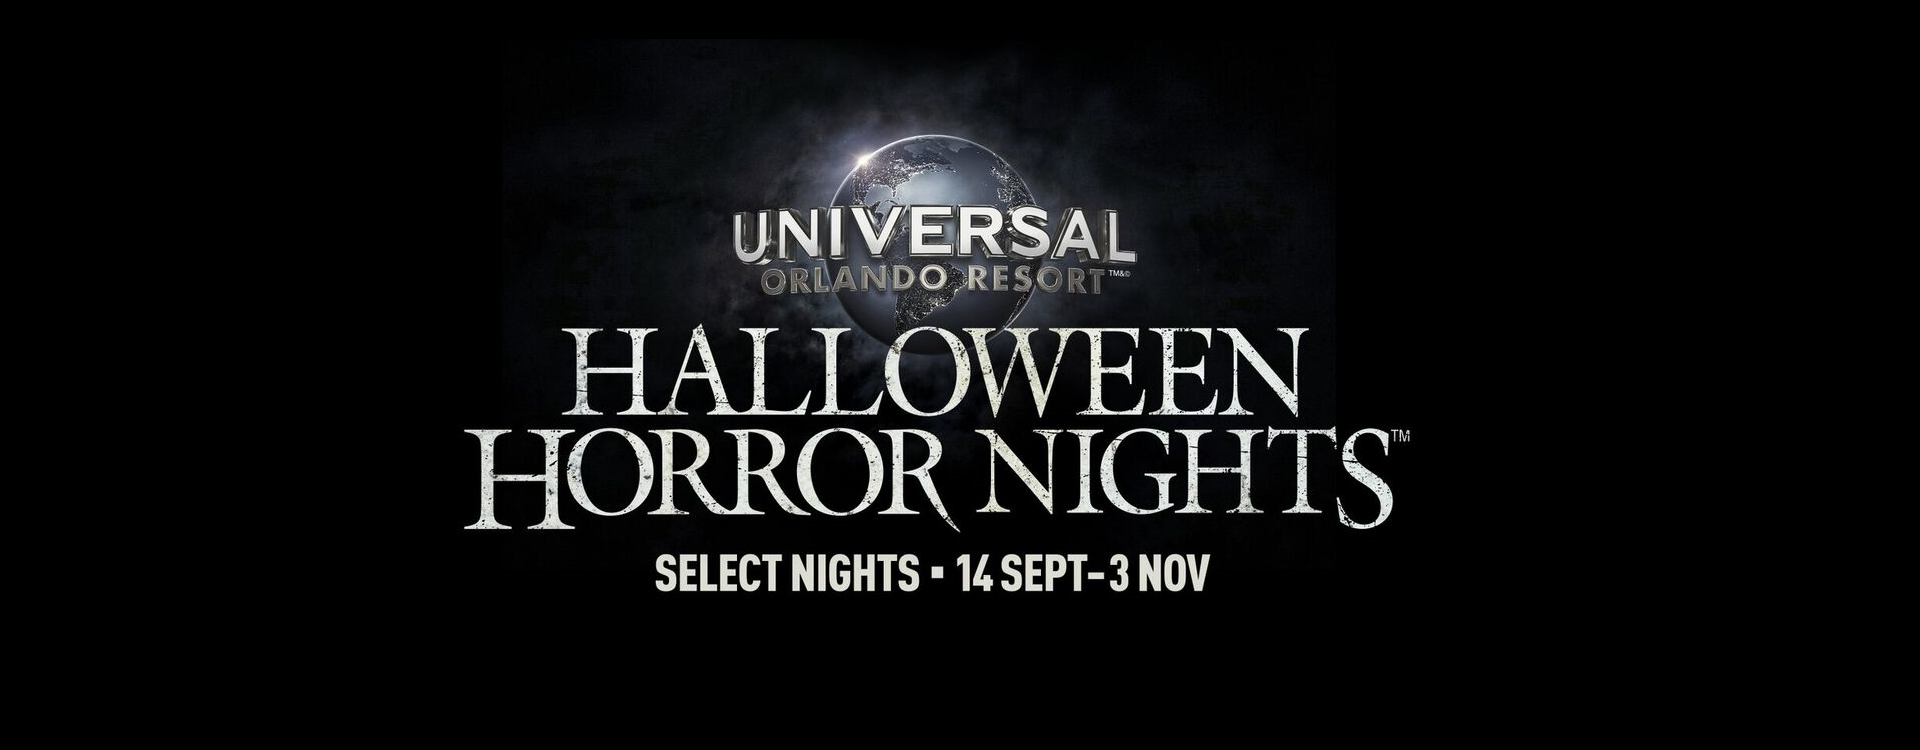 https://www.themeparktickets.co.uk/Ticket/Halloween-Horror-Nights-Flex-Ticket